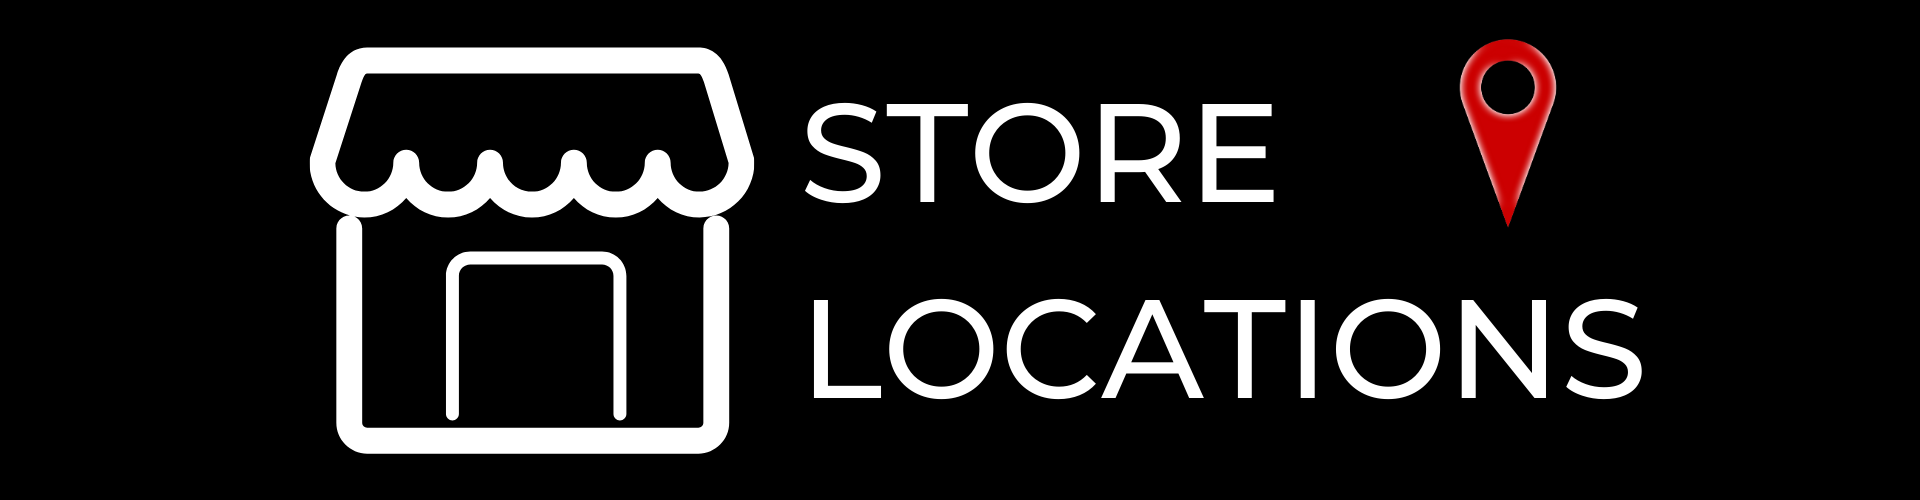 Store locations banner